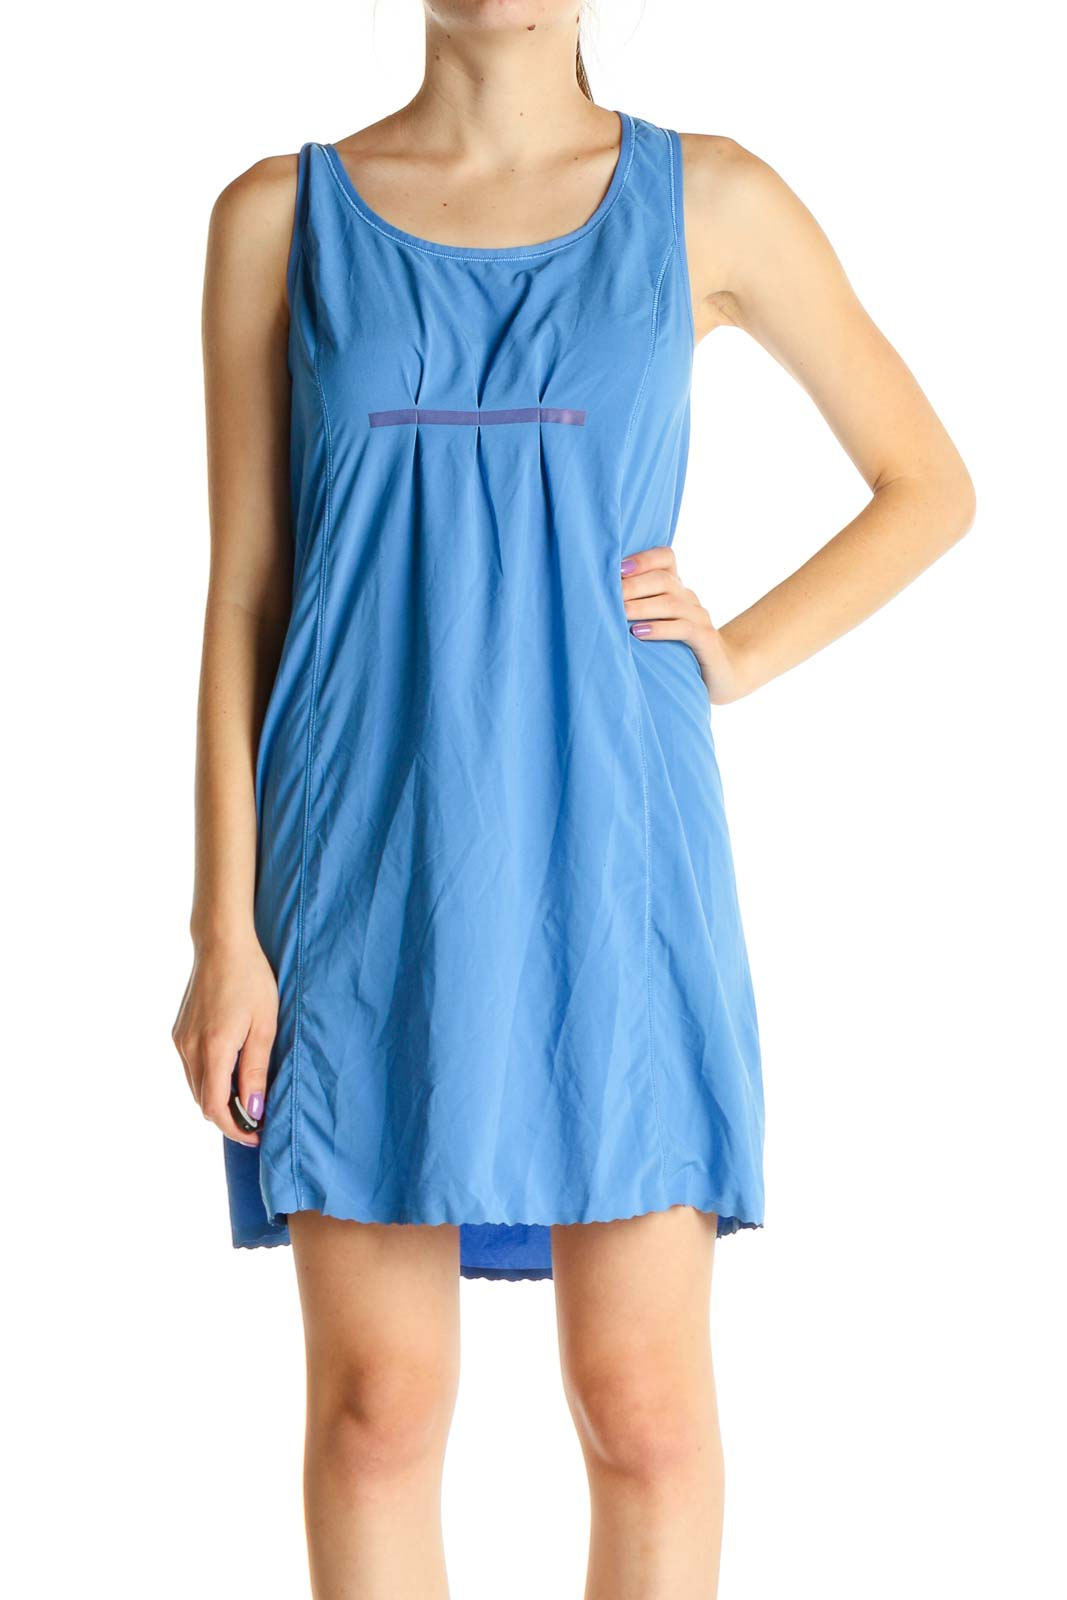 Blue Solid Activewear Dress Front